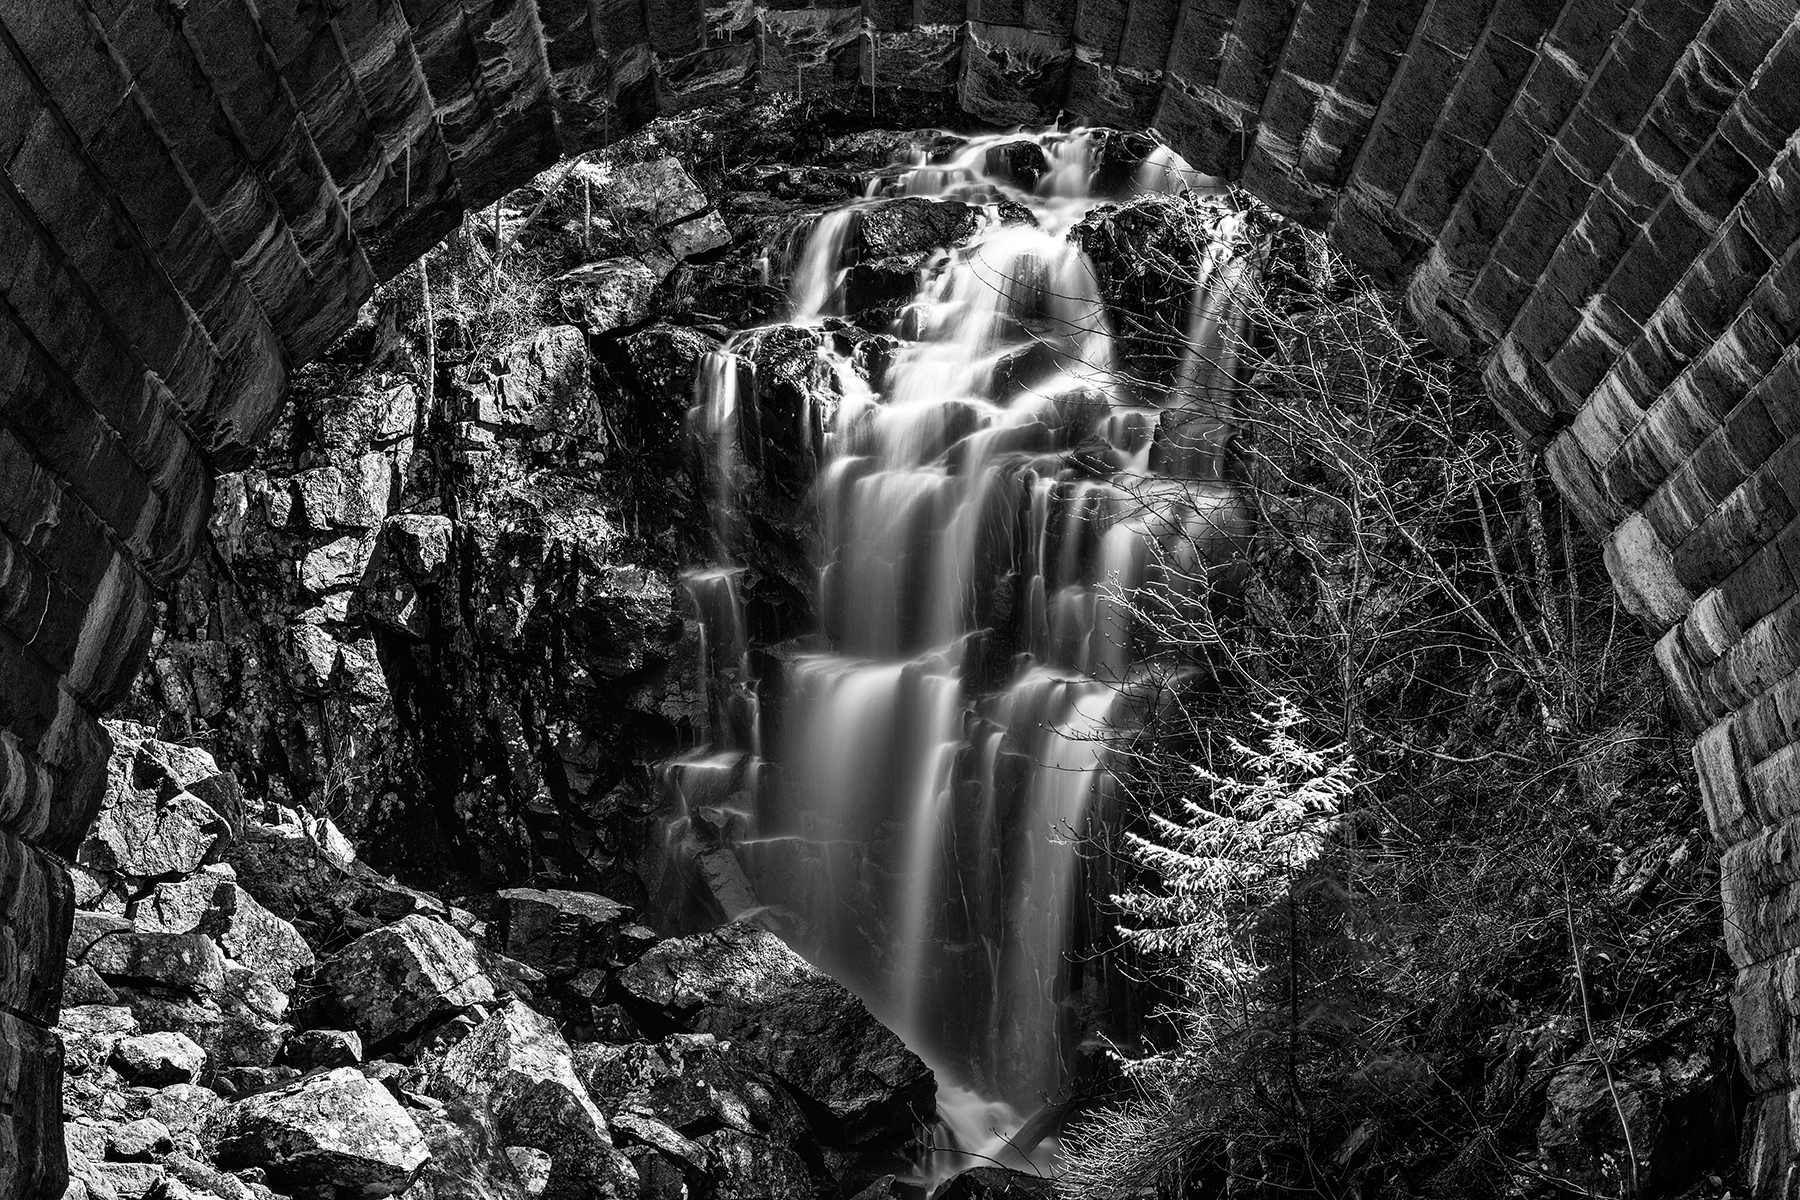 Hadlock arch falls - black & white photo